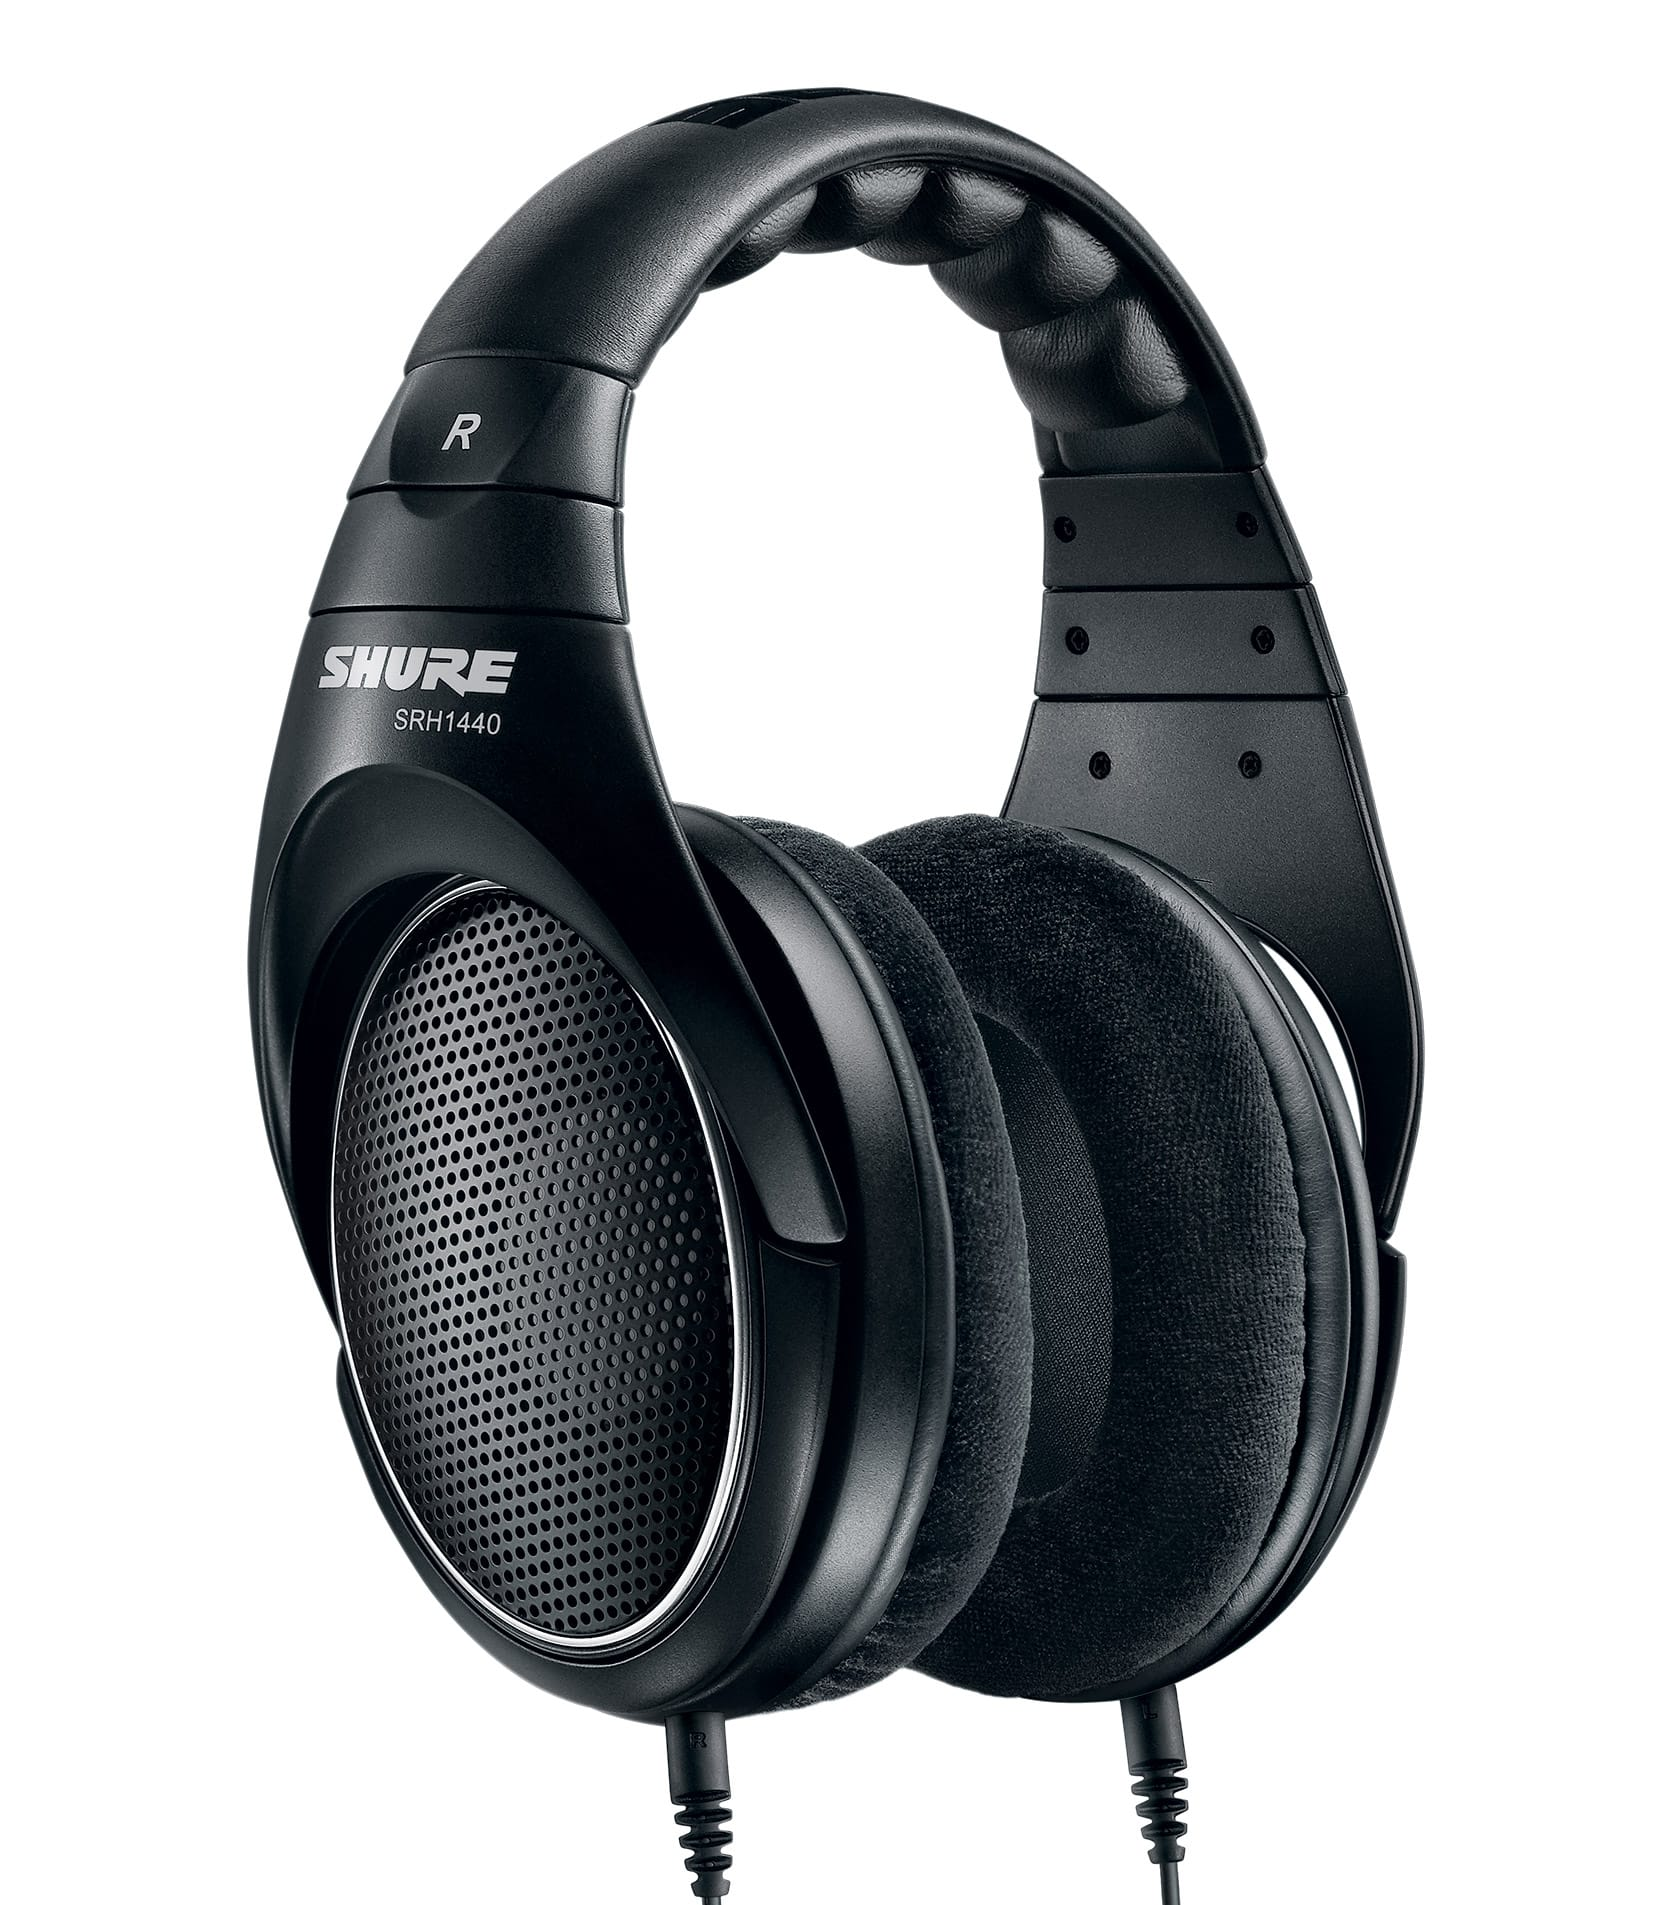 Shure - SRH1440 Professional Studio Headphones - Melody House